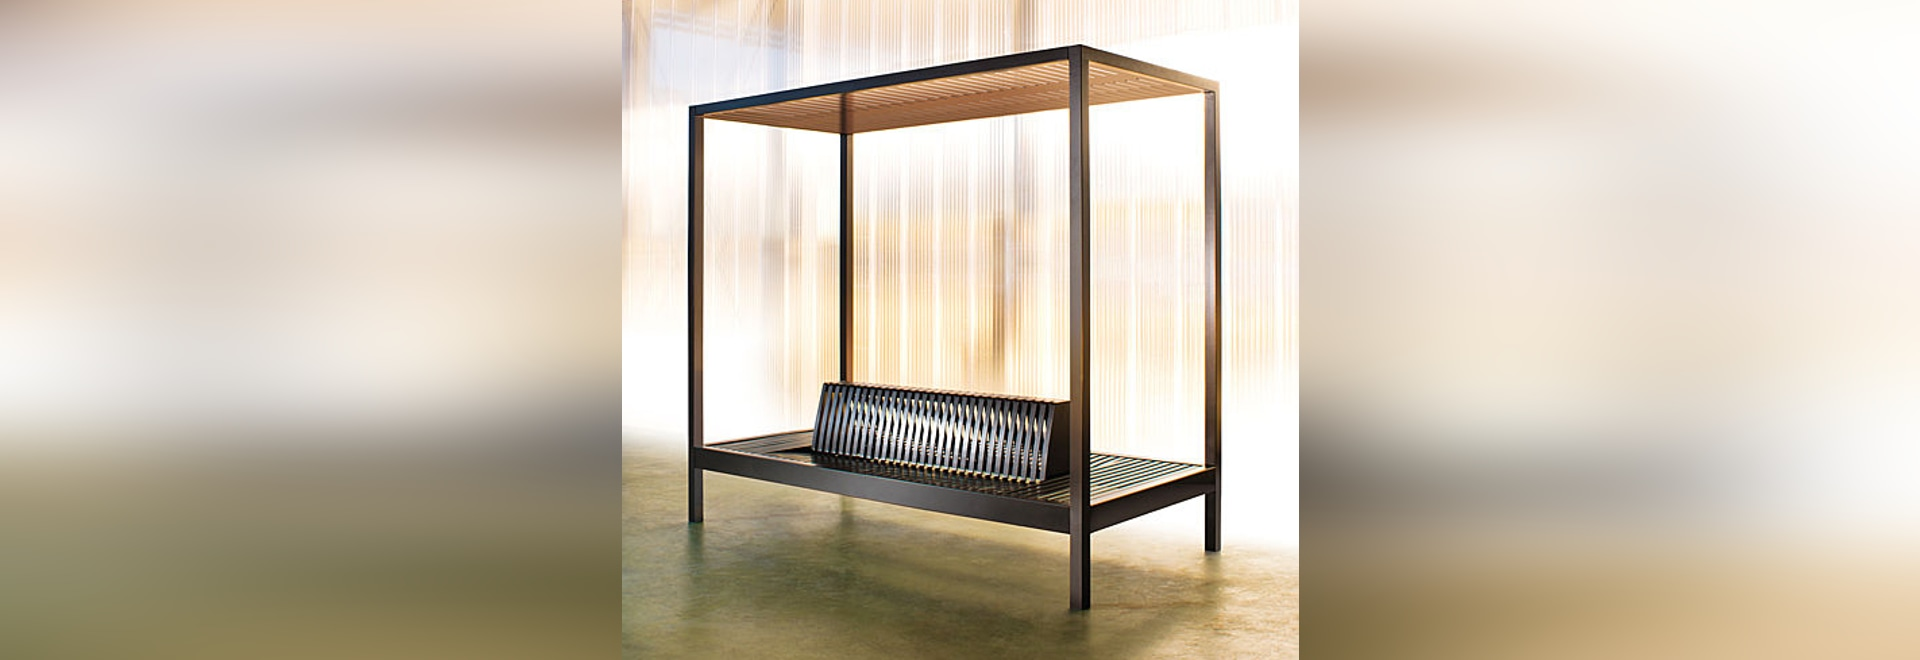 aréa presents the KYOTO bench